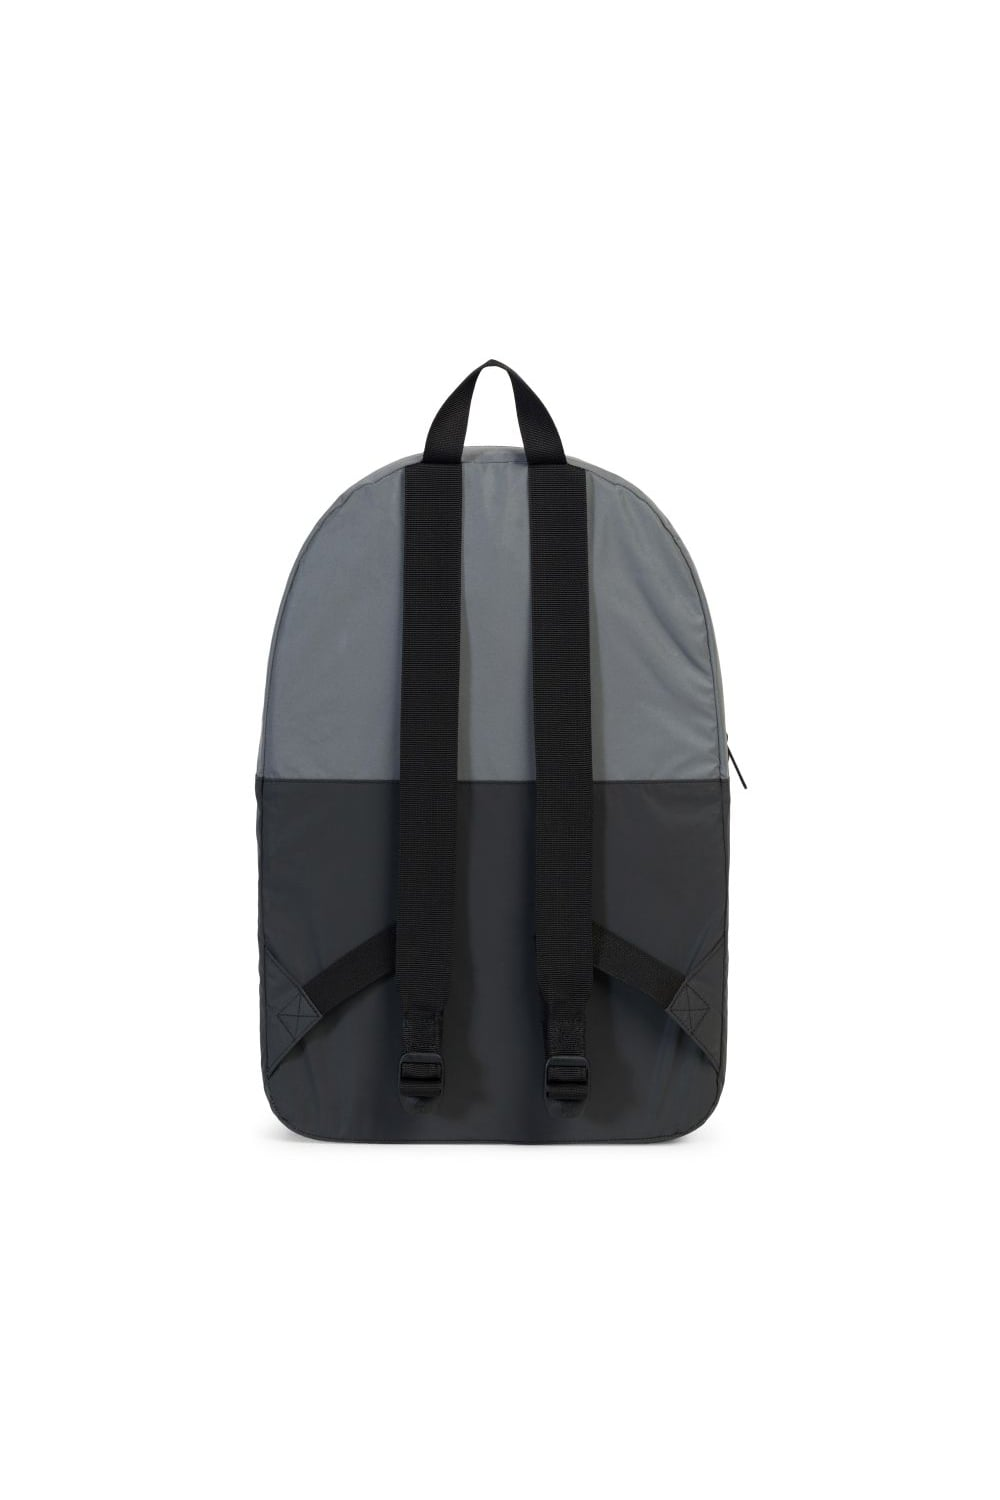 Herschel Supply Co. Packable Daypack (Silver Reflective Black ... 17328737a70a0